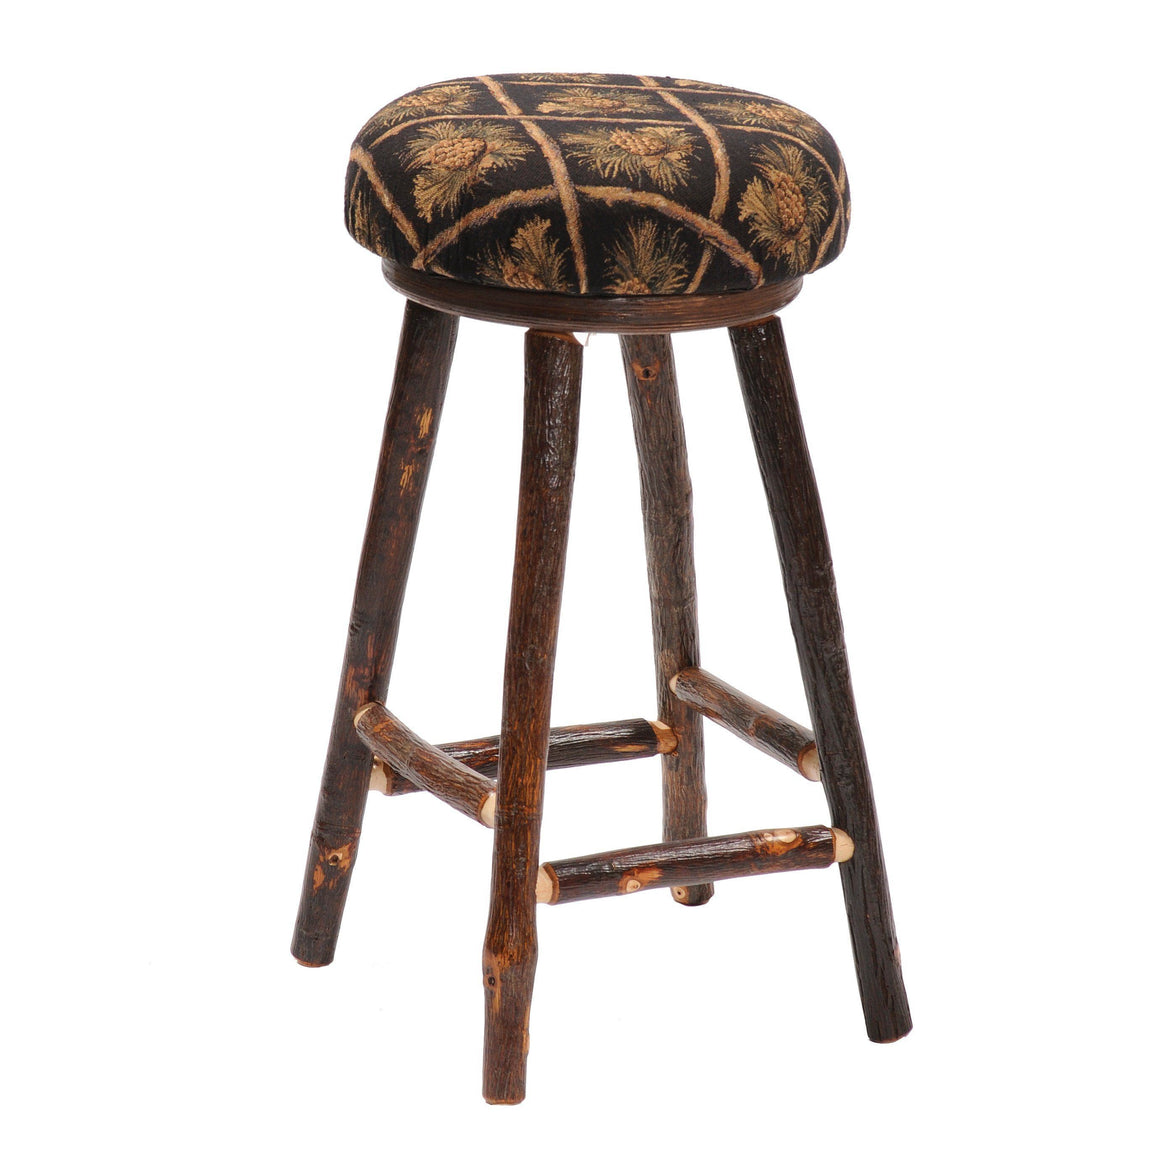 Natural Hickory Log Round Counter Stool - Upholstered - Handmade USA-Rustic Deco Incorporated